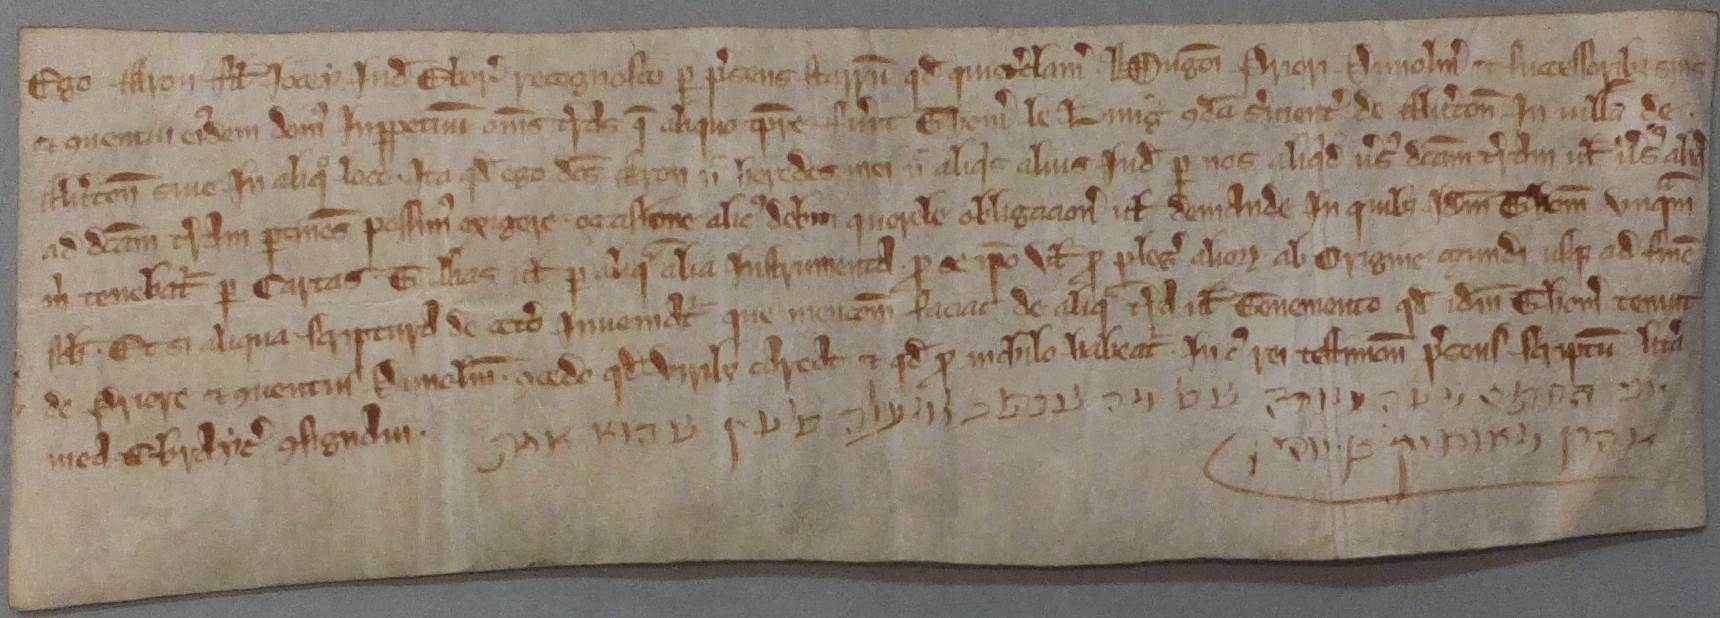 "Image of a Quitclaim by Aaron of York to the prior and convent of Durham, renouncing his right to the lands of a former debtor, held among the Durham Cathedral Archives (ref DCD 1.1.Ebor.15b).  The Hebrew text translates as, ""I the undersigned certify t"